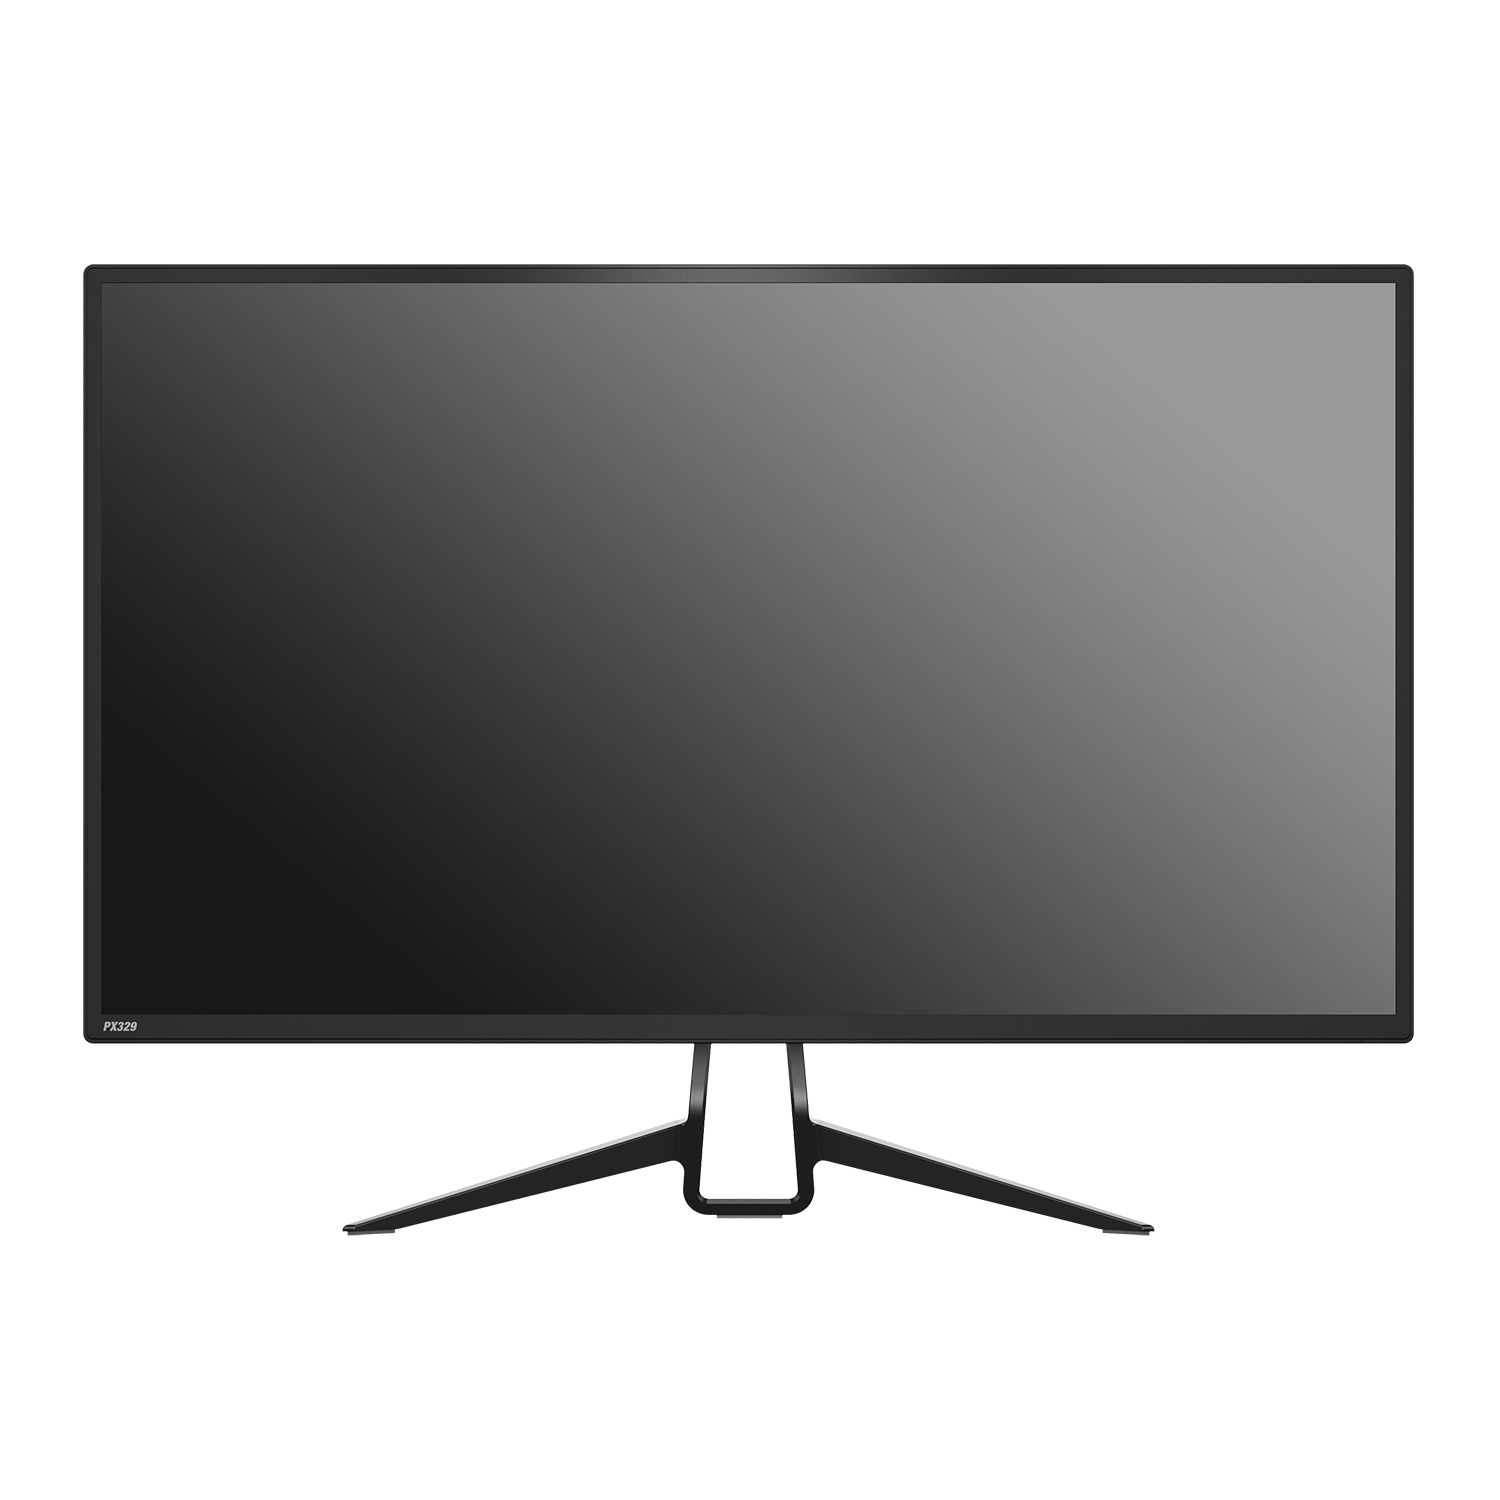 Pixio-PX329-gaming-monitor-front